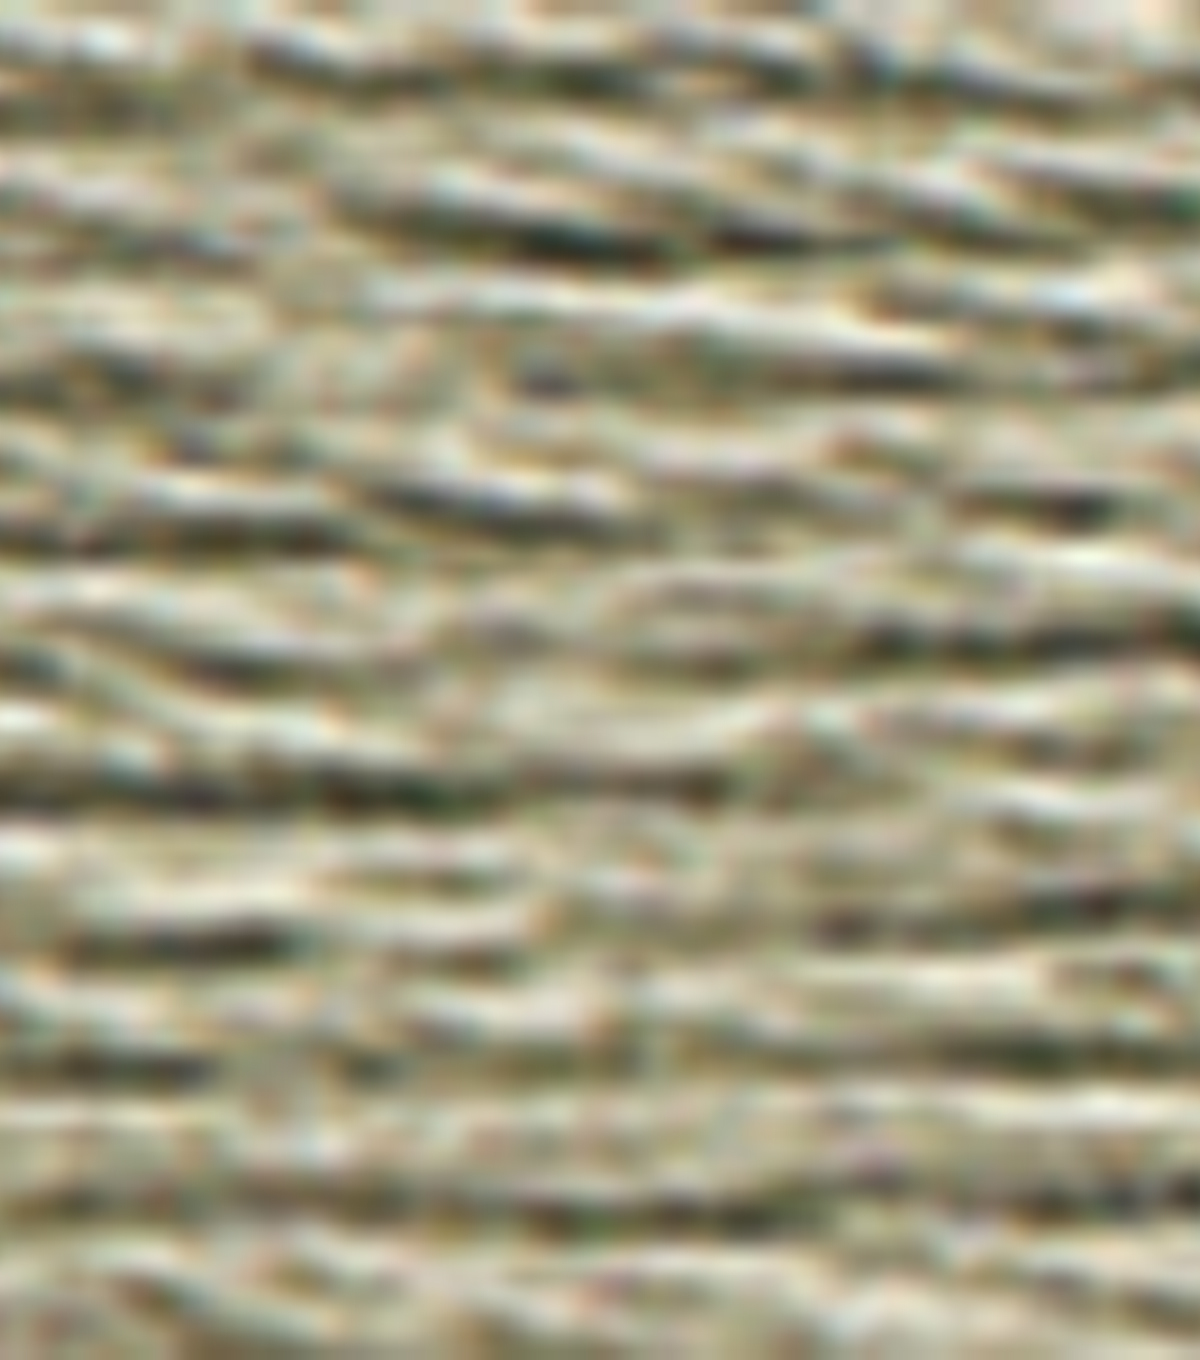 DMC Pearl Cotton Thread 16 Yds Size 3 Neutrals, Md Beaver Gray/647